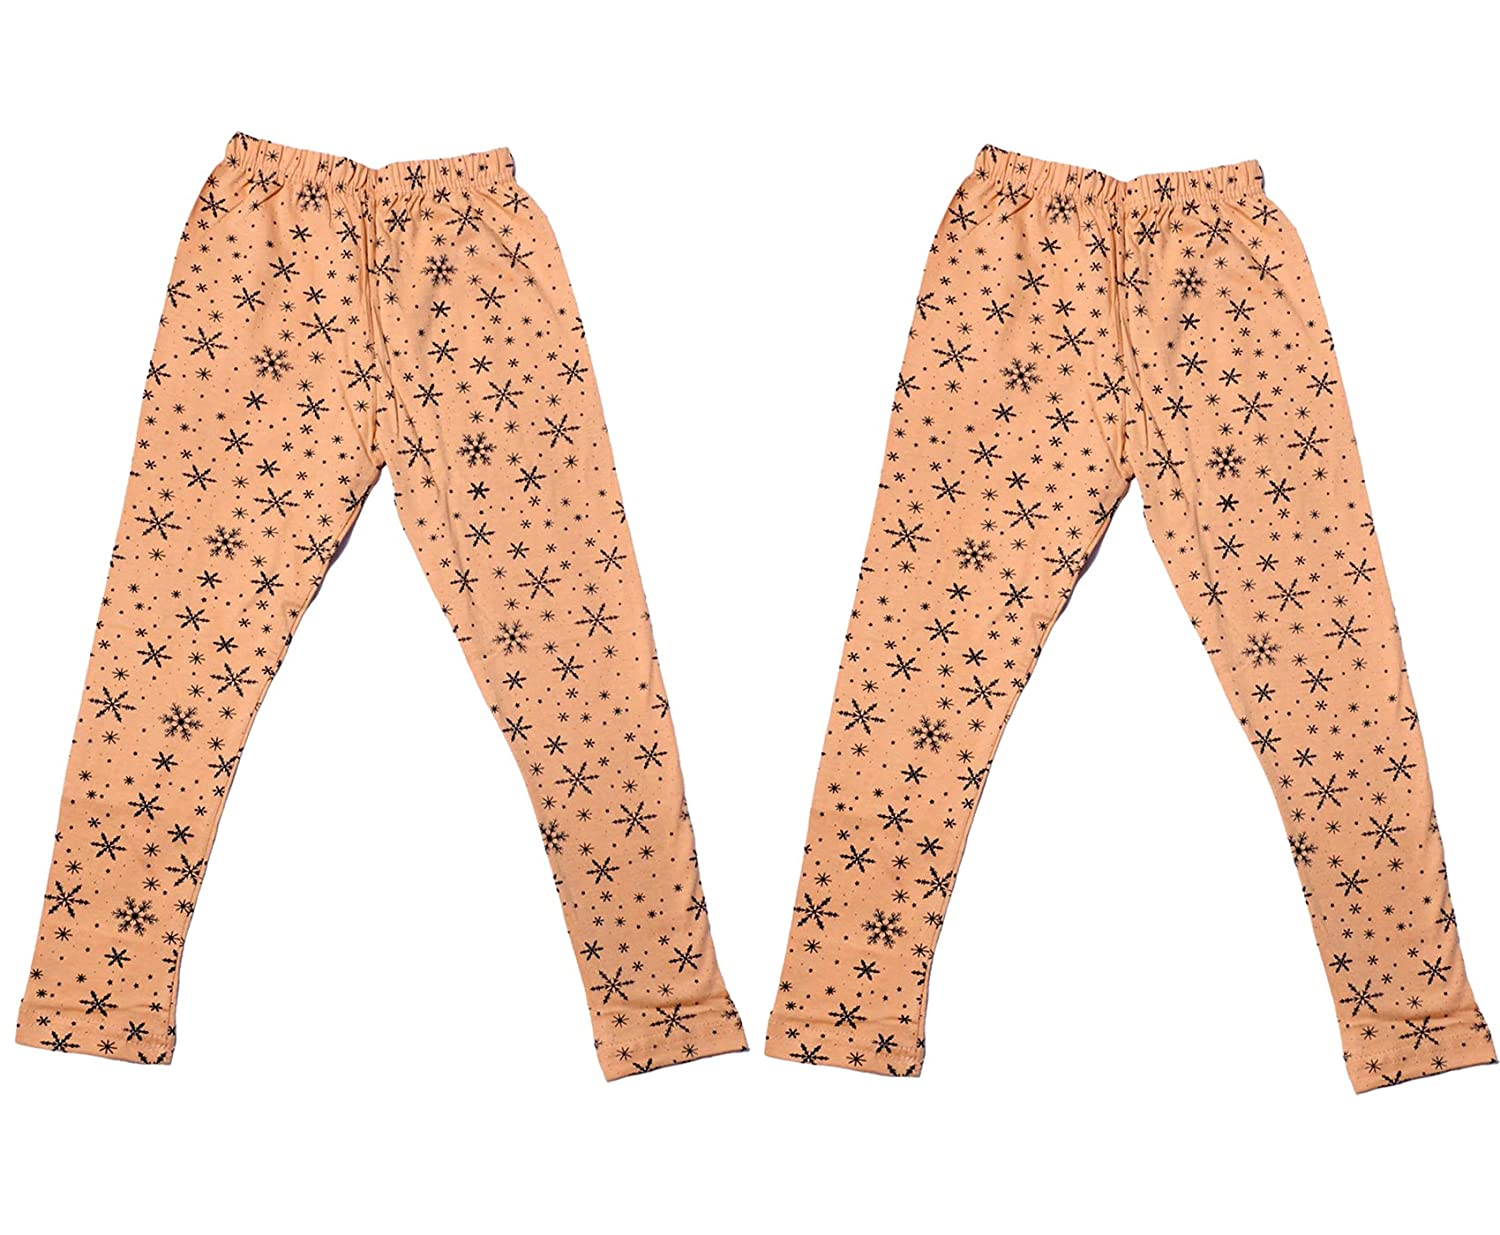 Pack of 2 Beige Indistar Girls Super Soft and Stylish Cotton Printed Legging